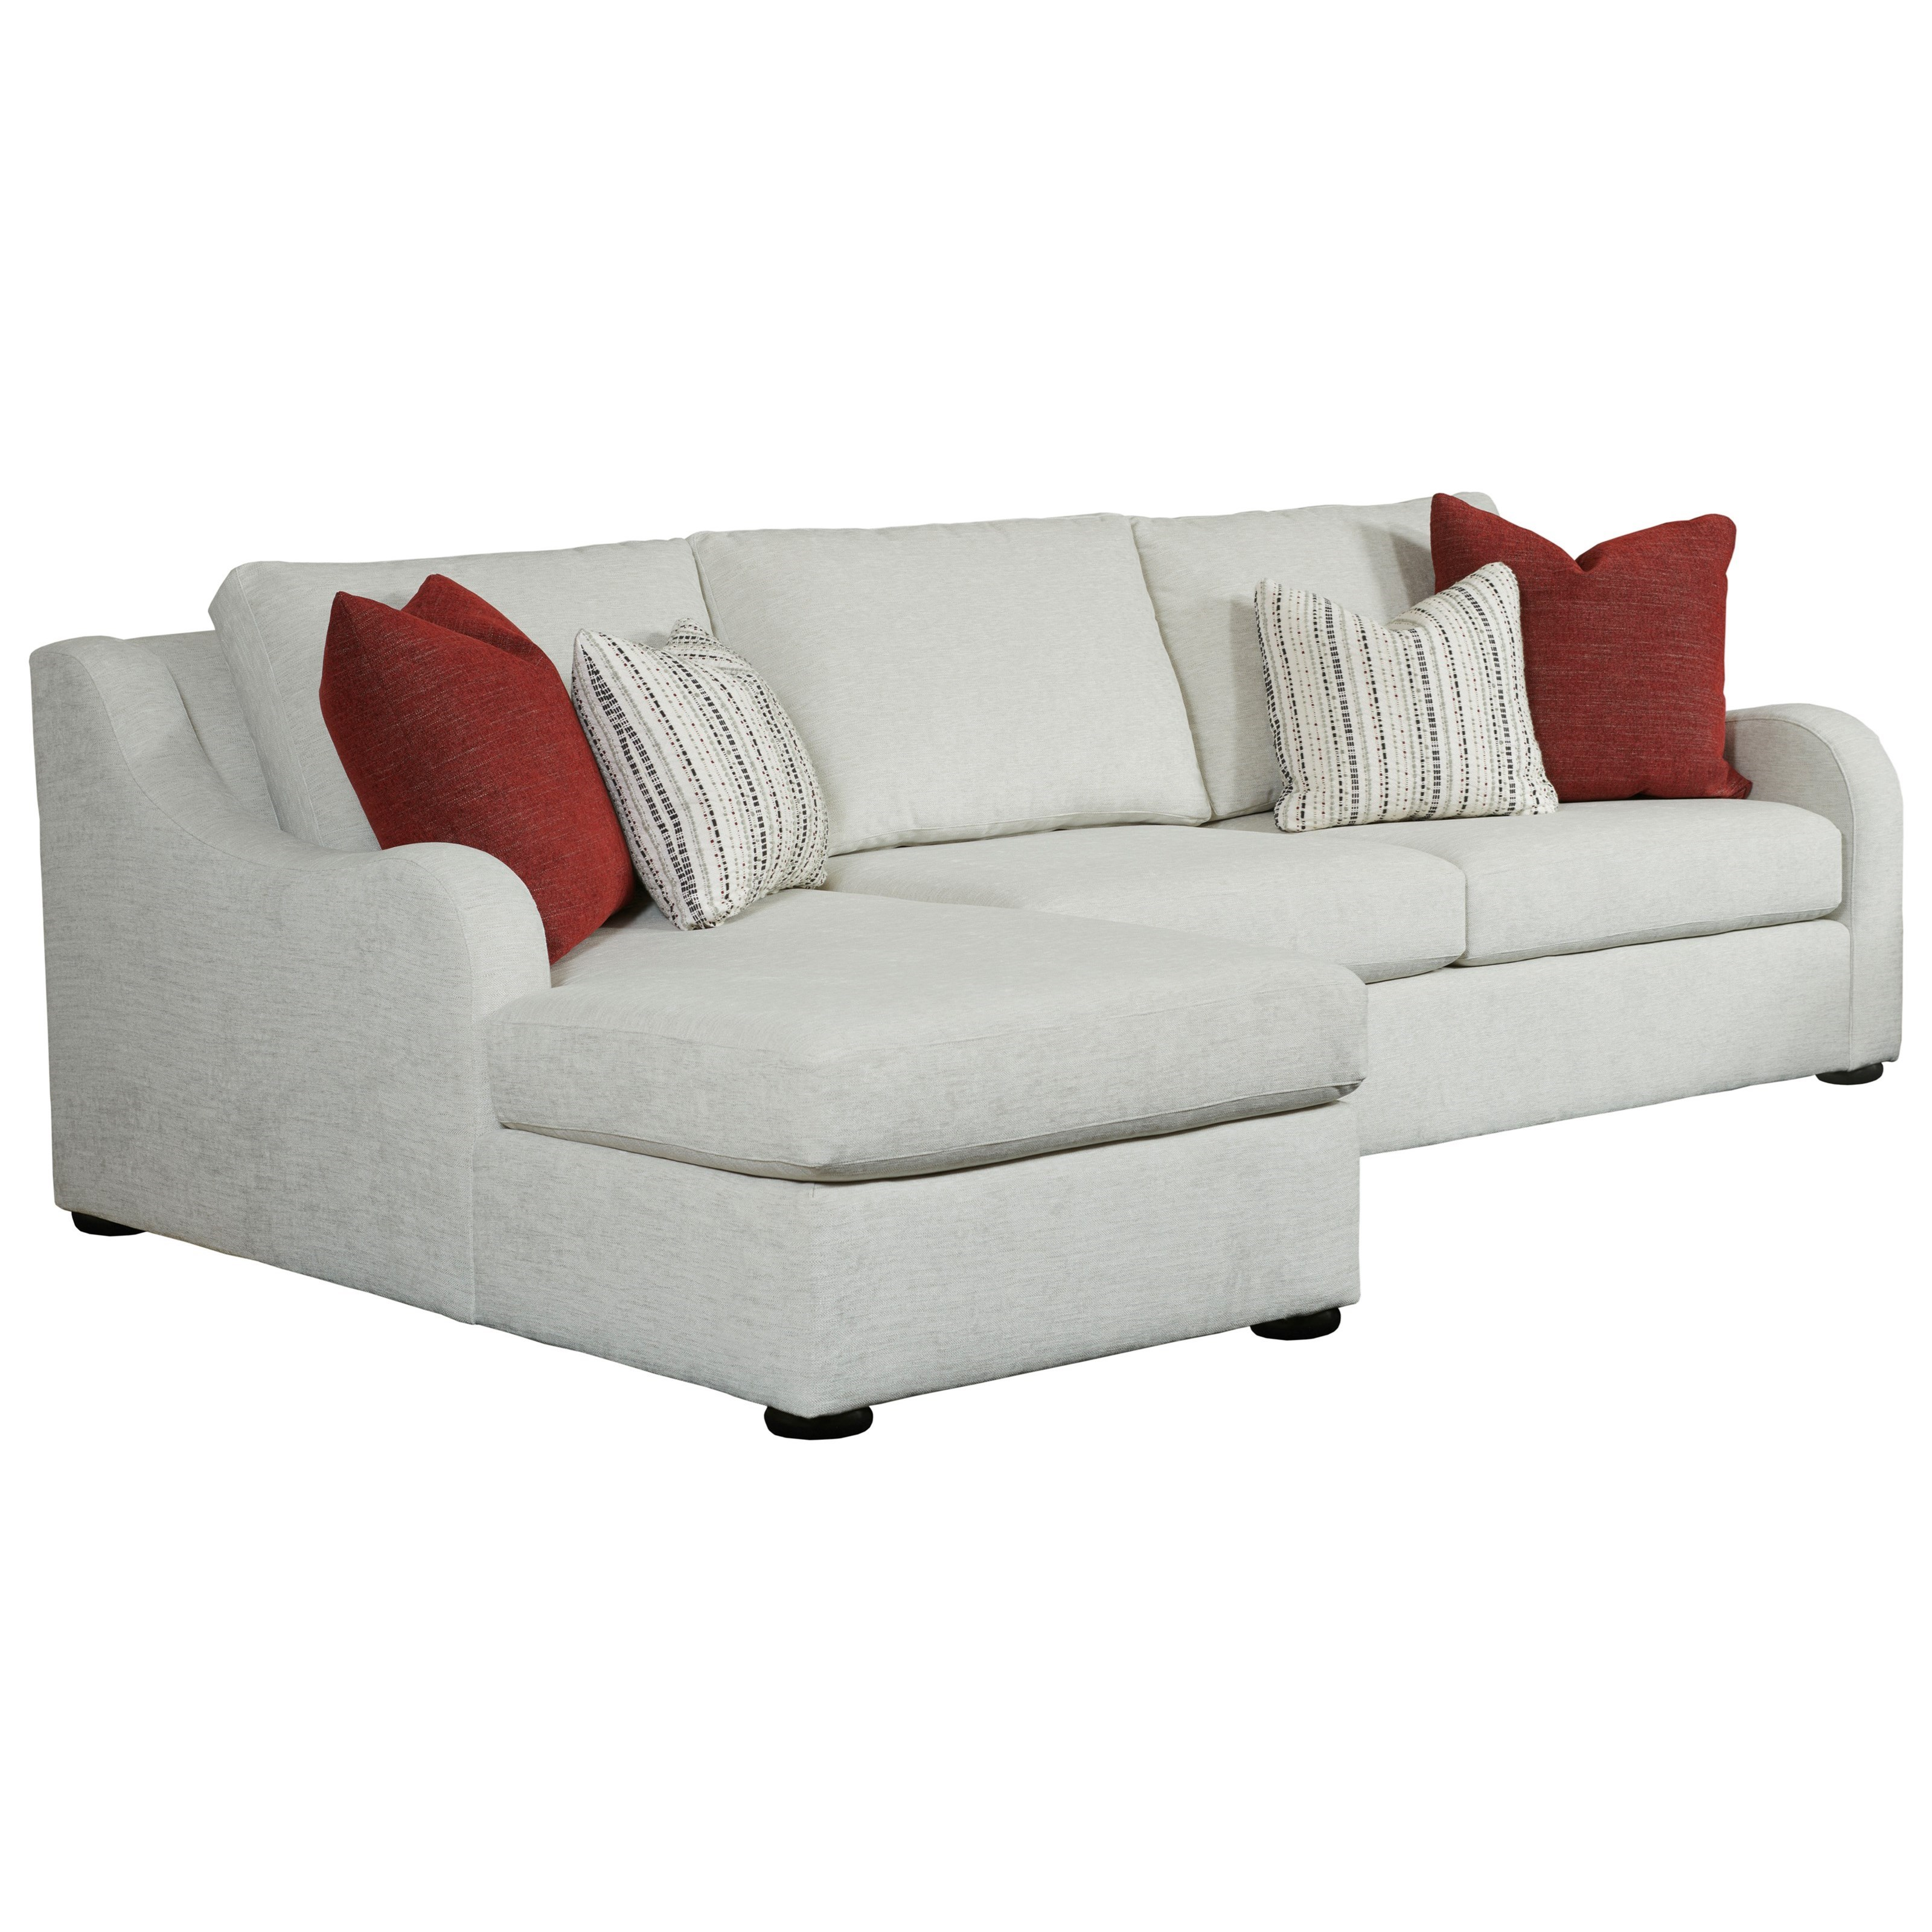 Comfort Select Chaise Sofa by Kincaid Furniture at Johnny Janosik